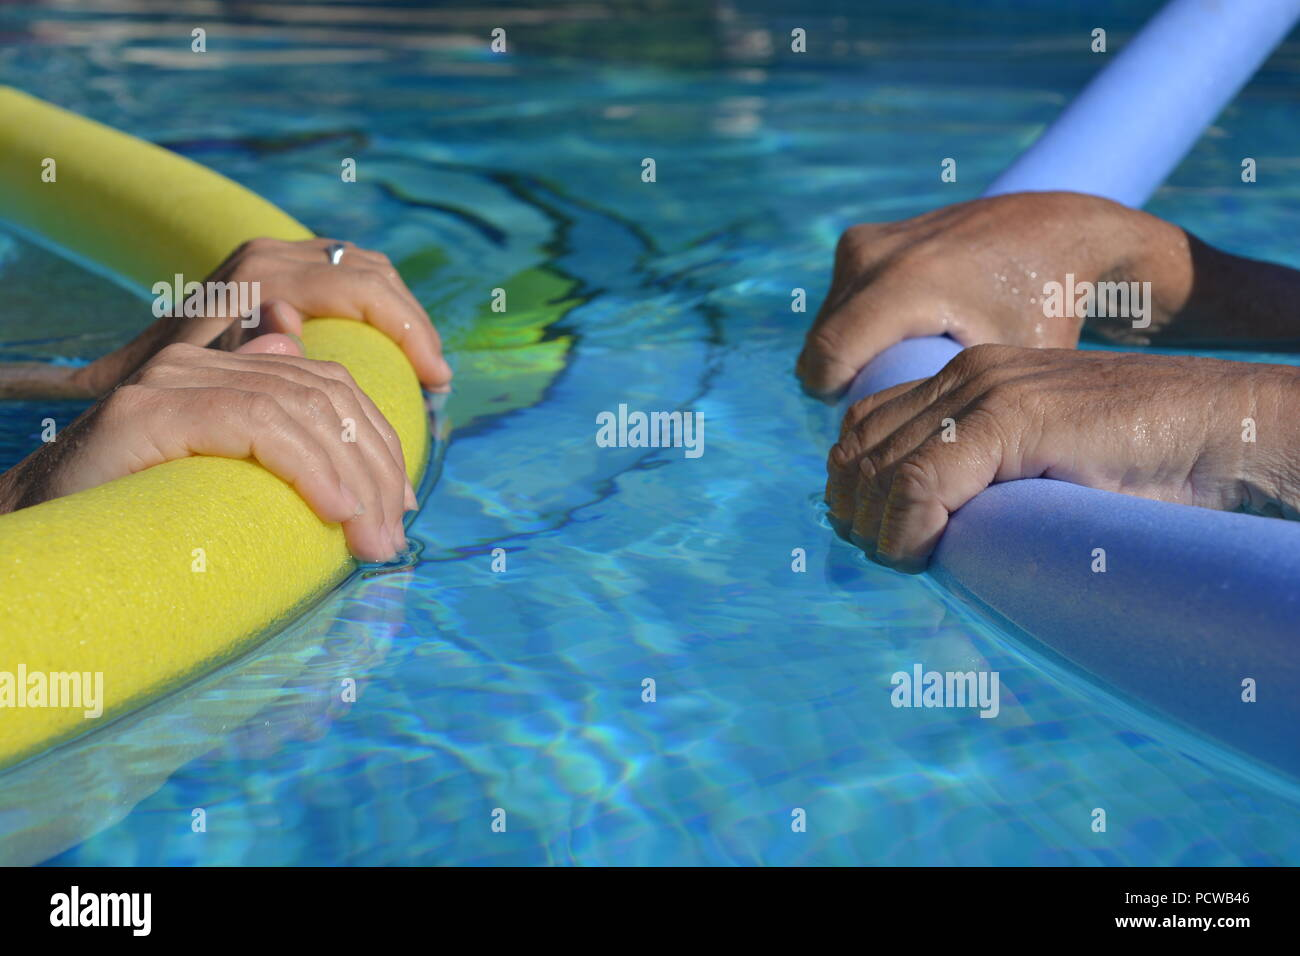 Couple in swimming pool, facing each other, floating with pool noodles, selective focus on hands holding the noodles - Stock Image